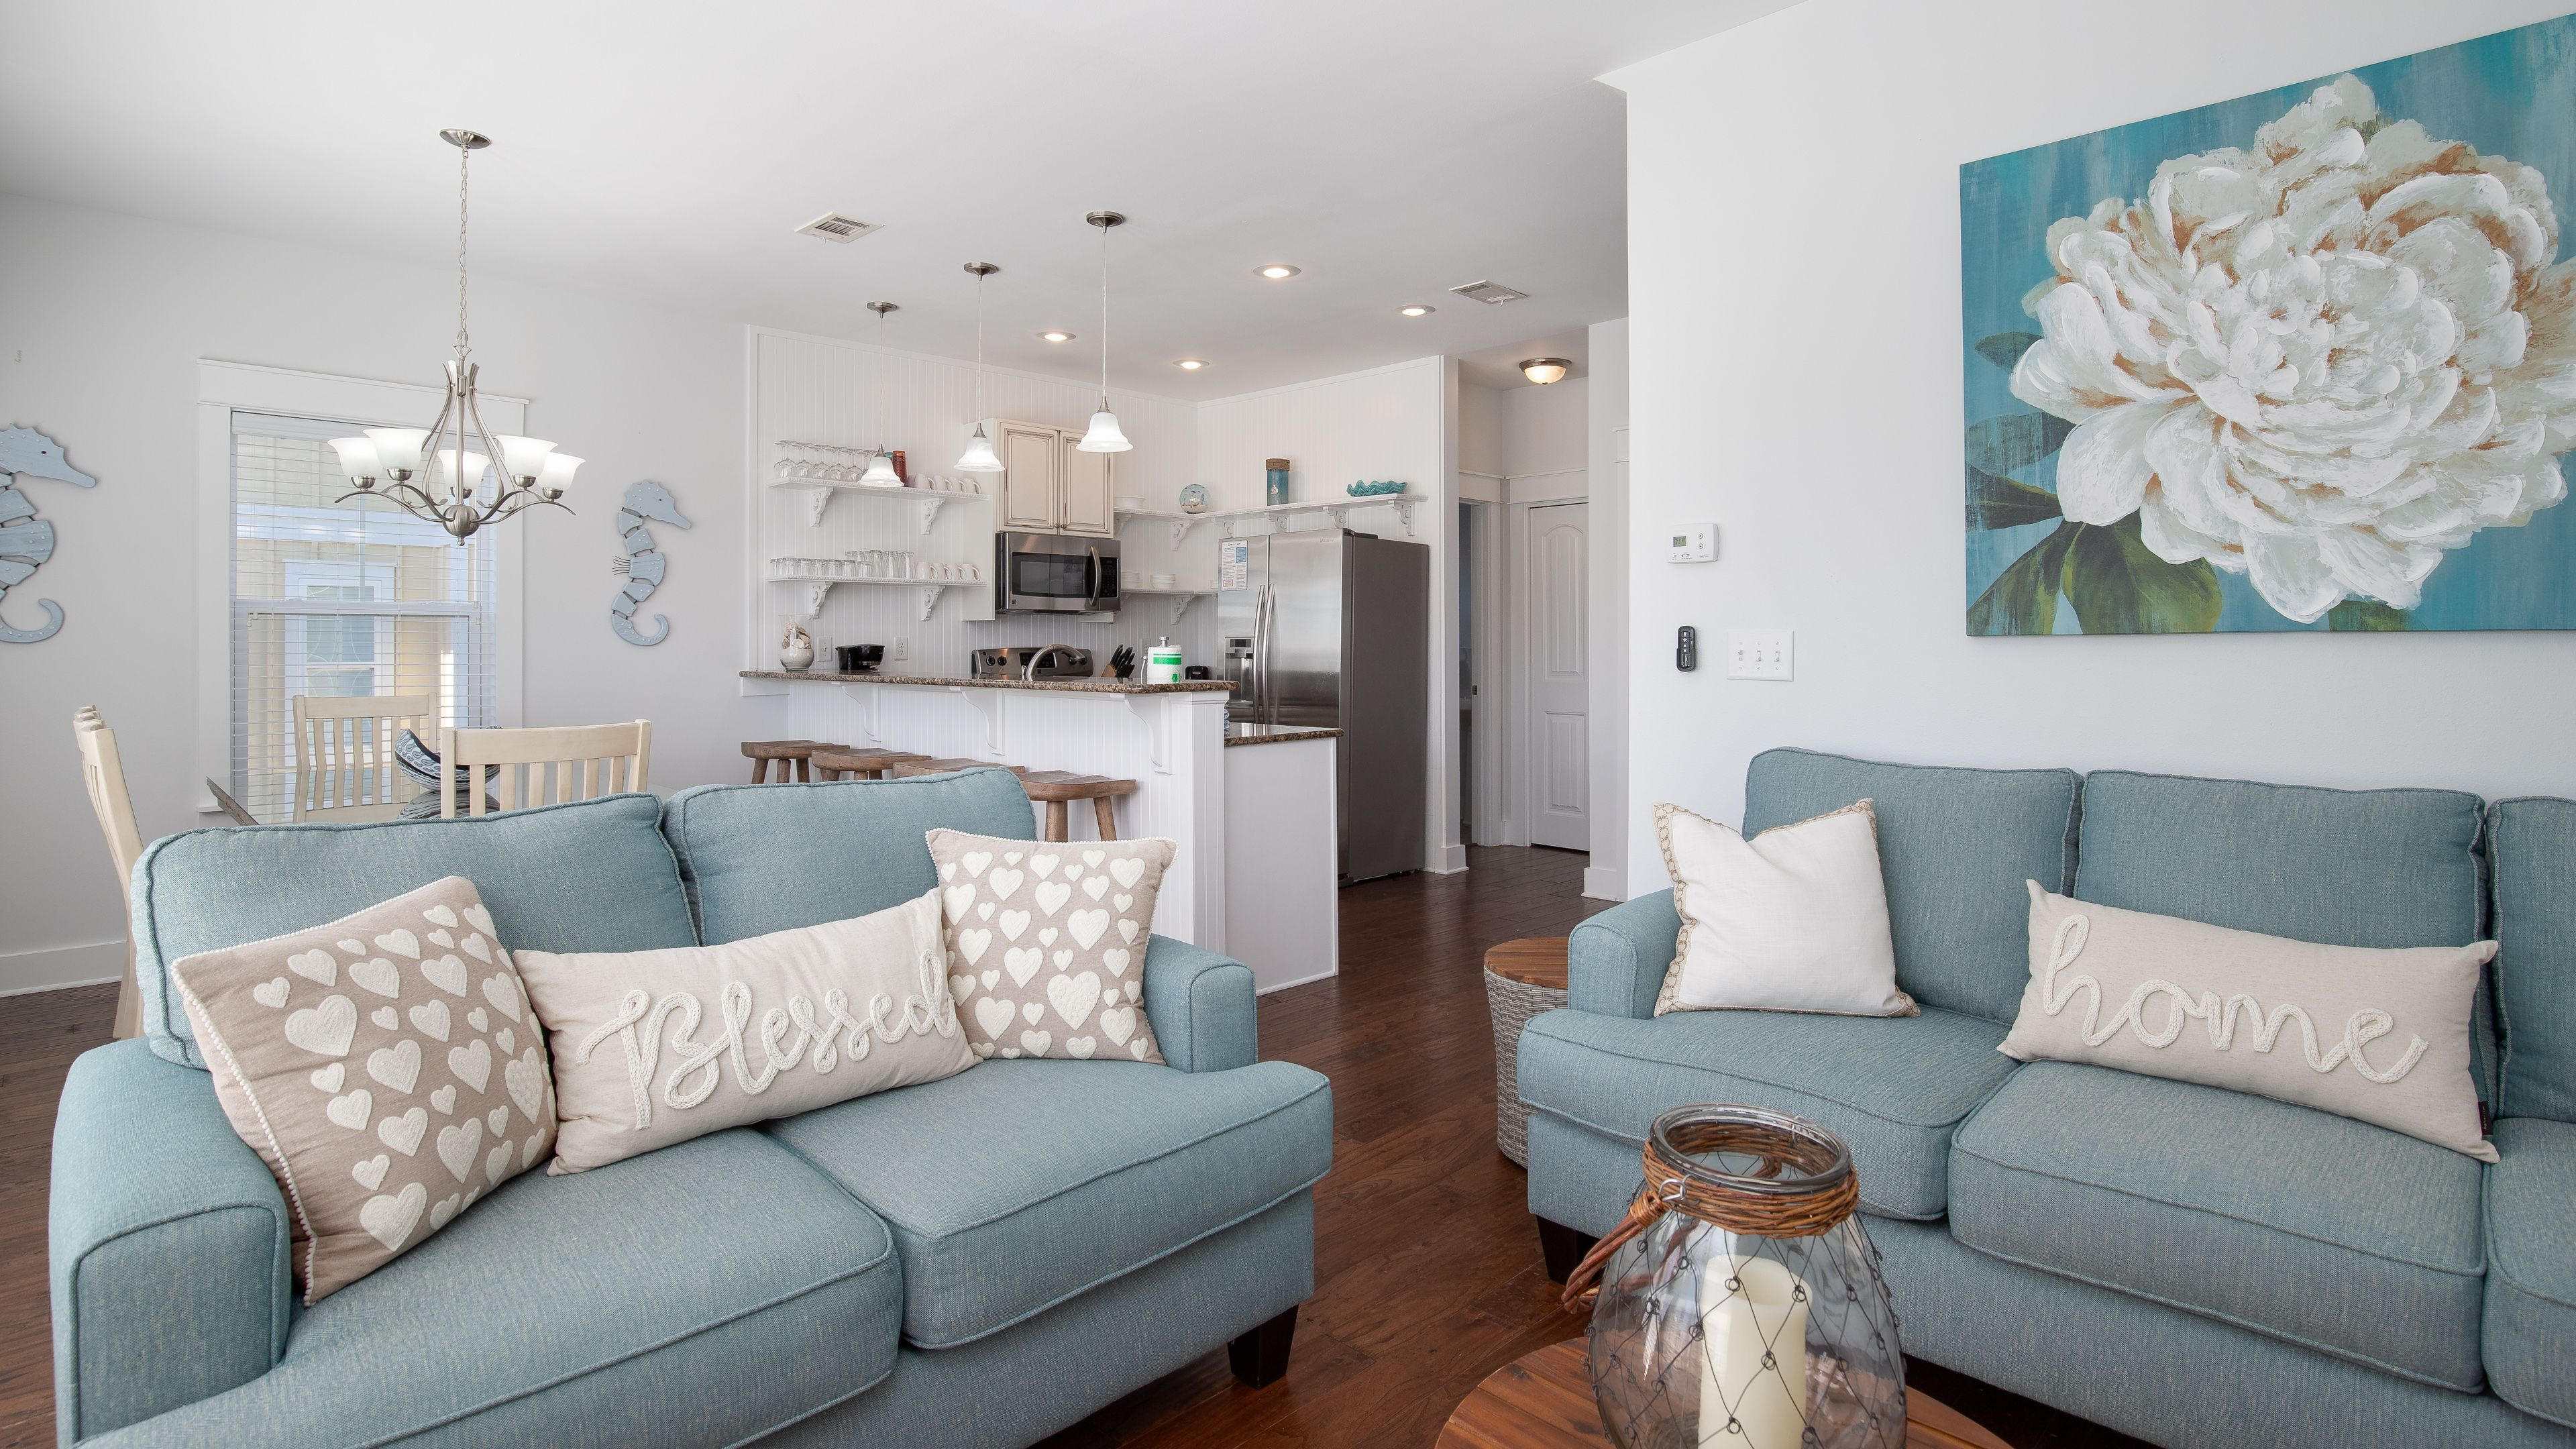 Wondering where to stay in Destin and South Walton